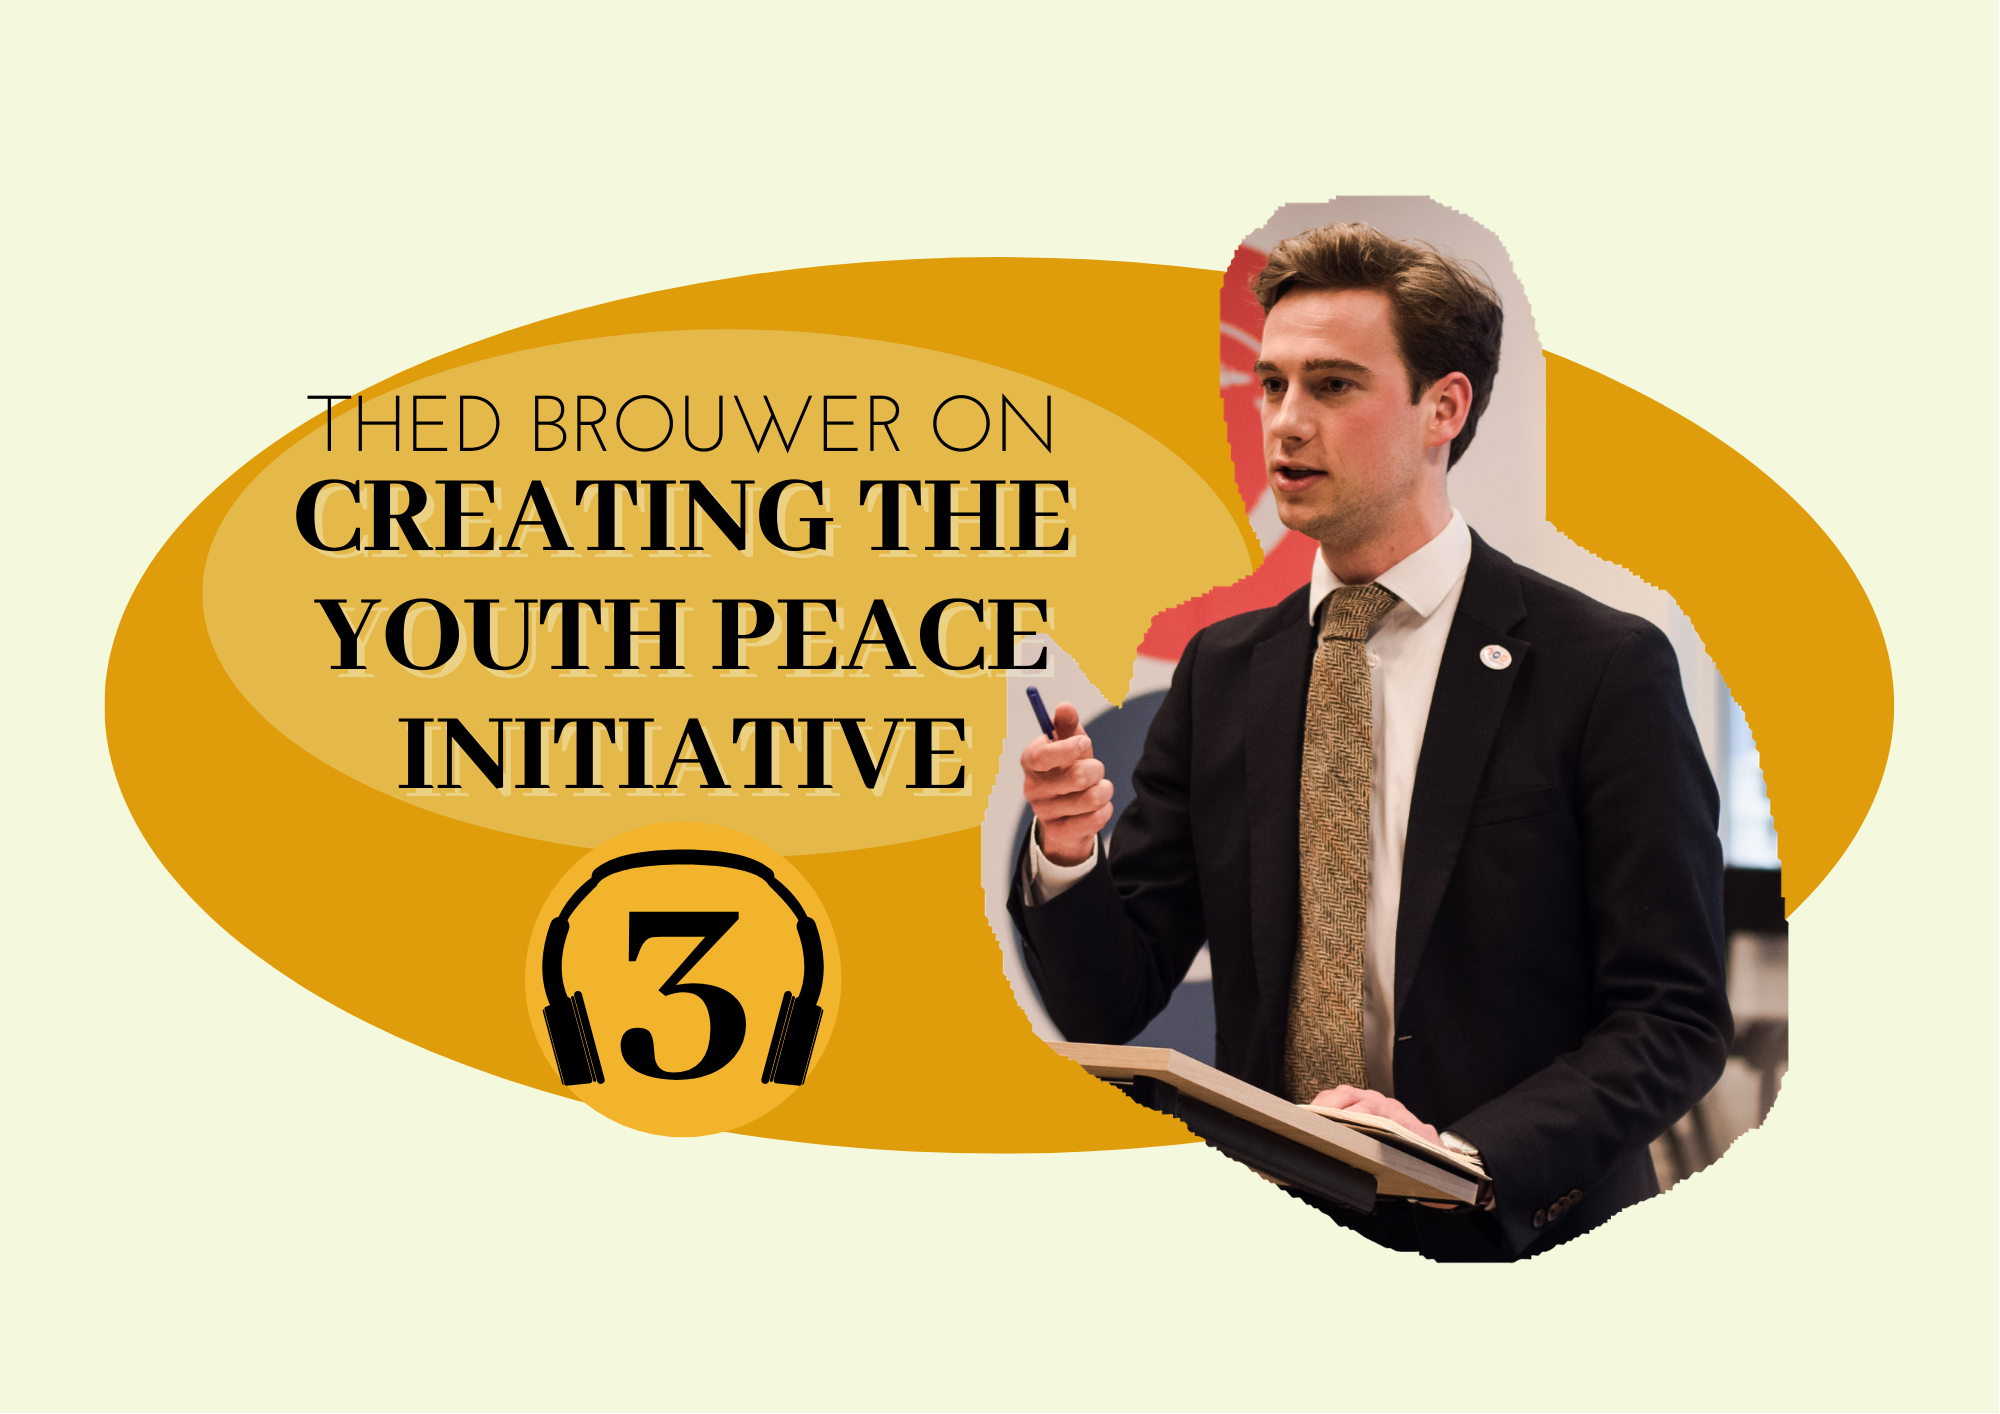 YOUTH PEACE TALKS EP.3: CREATING AN NGO WITH THED